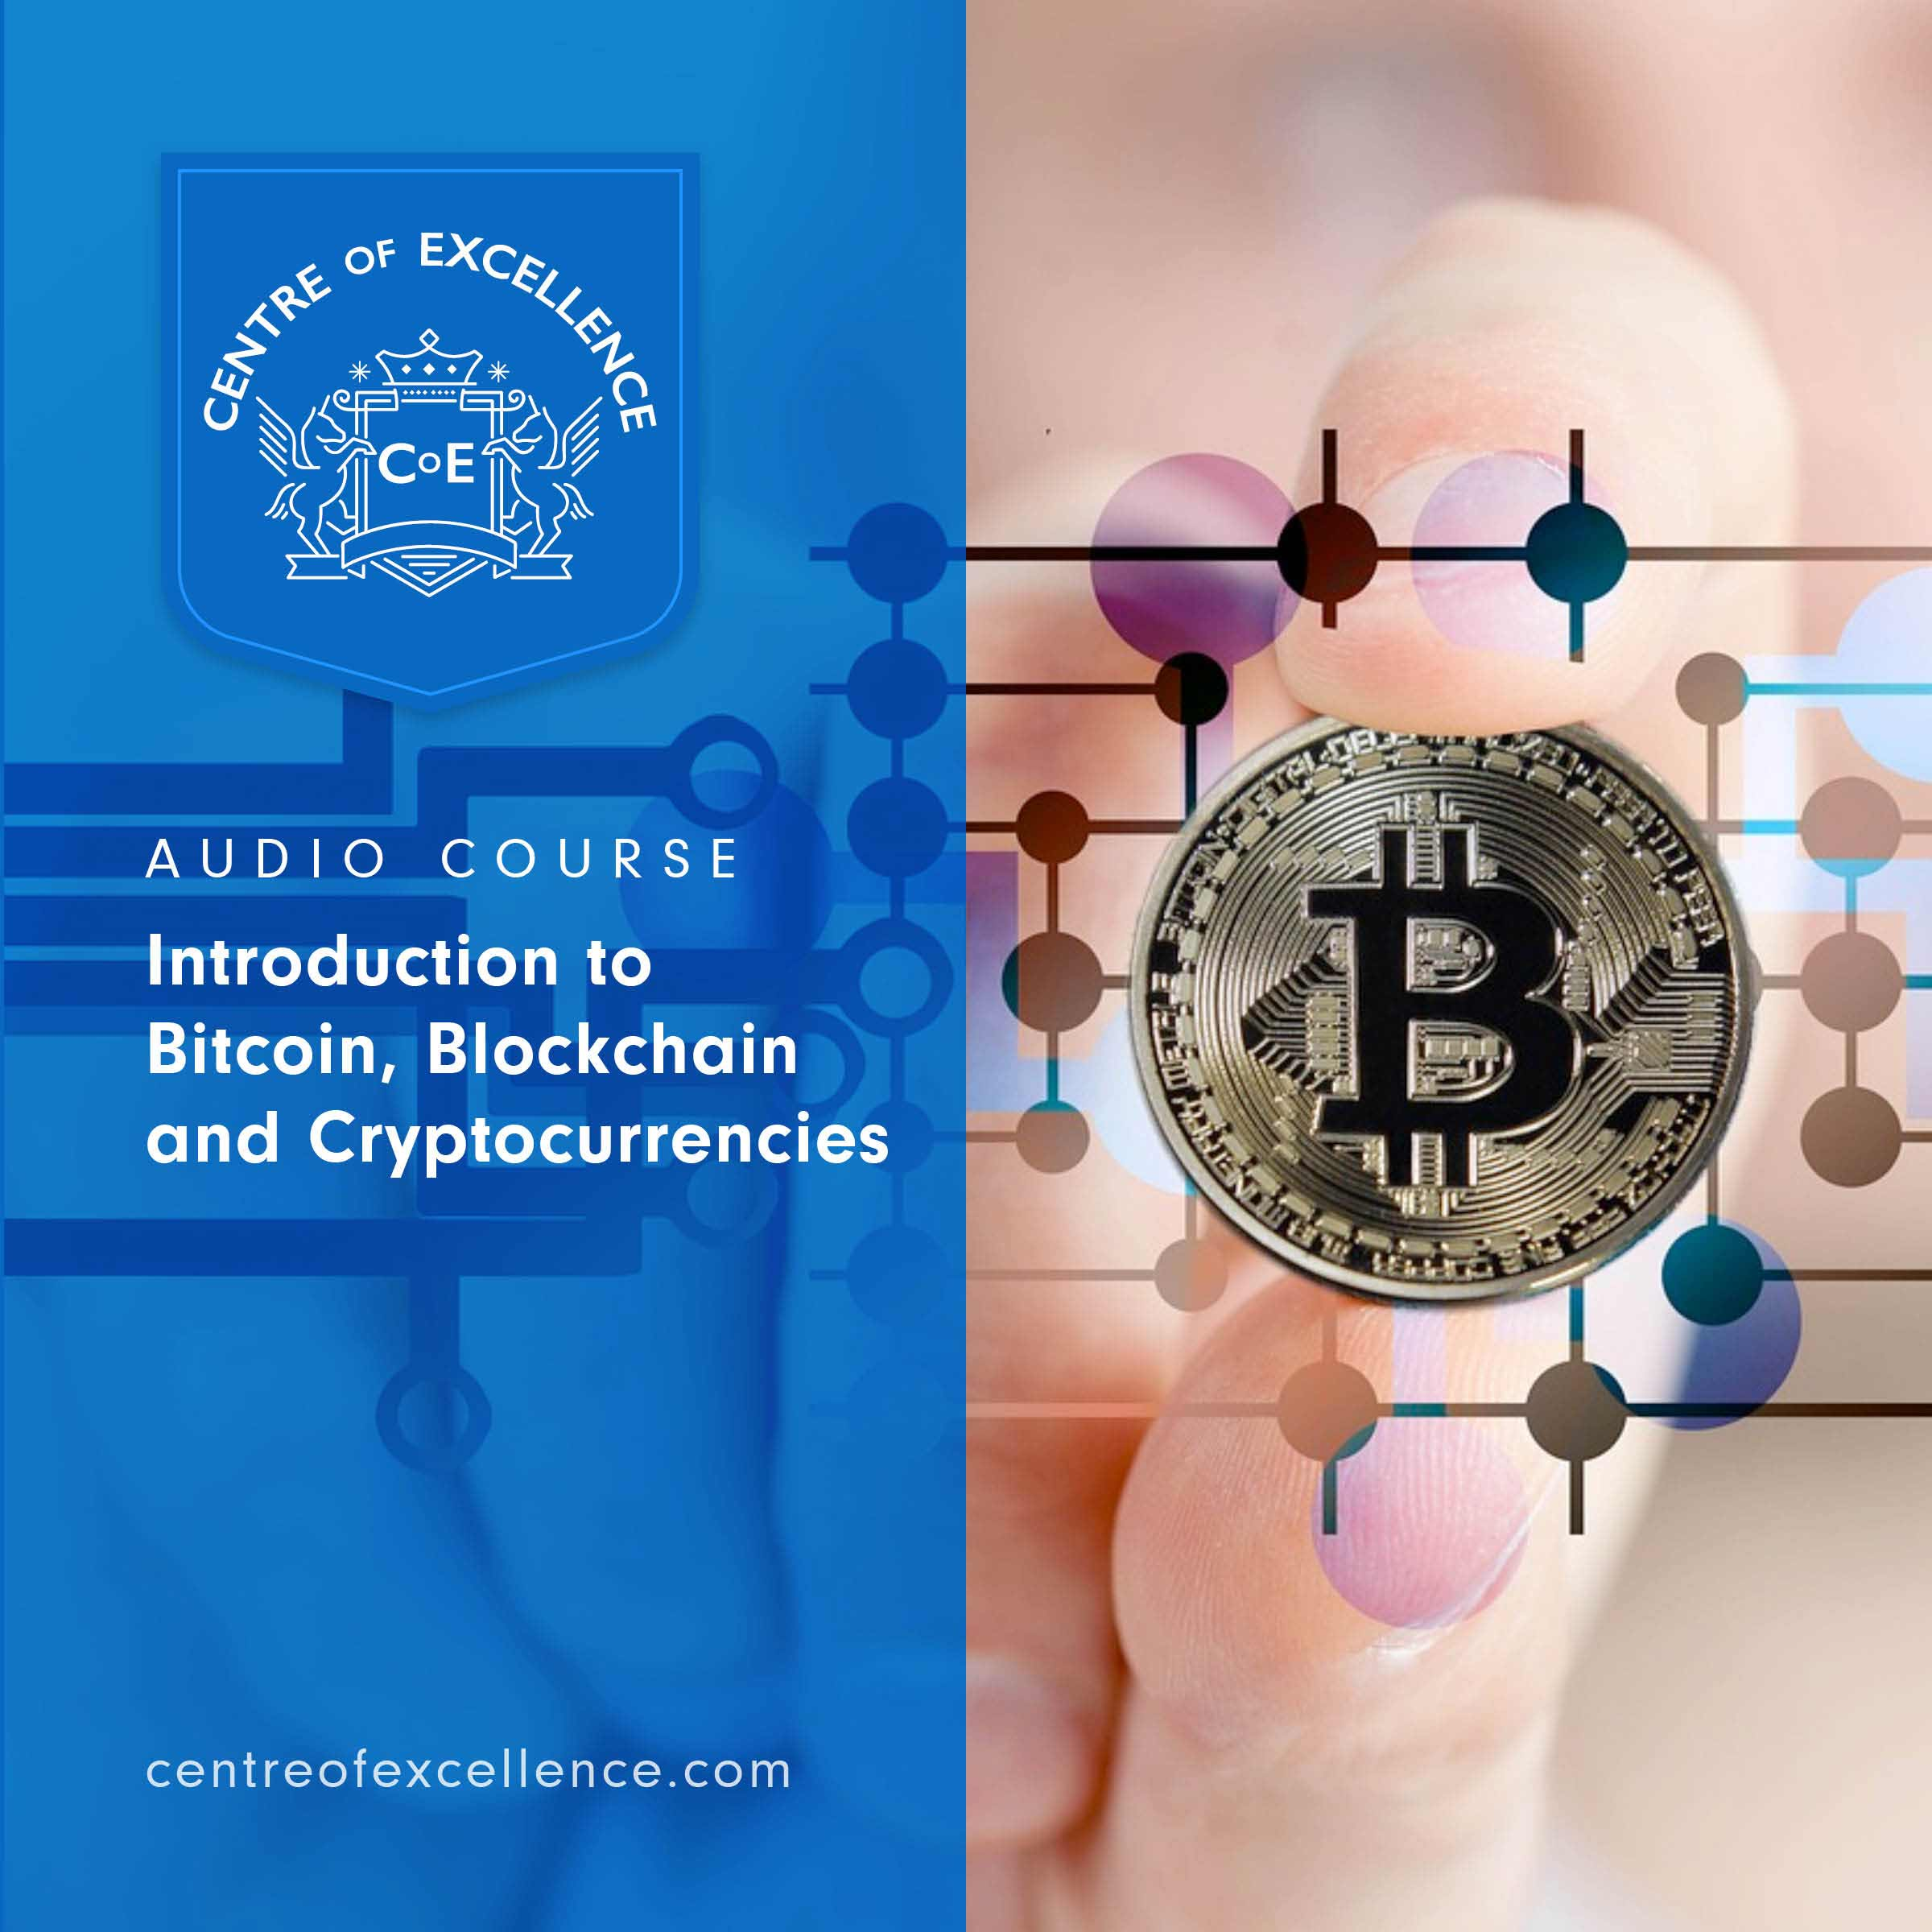 Introduction to Bitcoin, Blockchain and Cryptocurrencies Audio Course